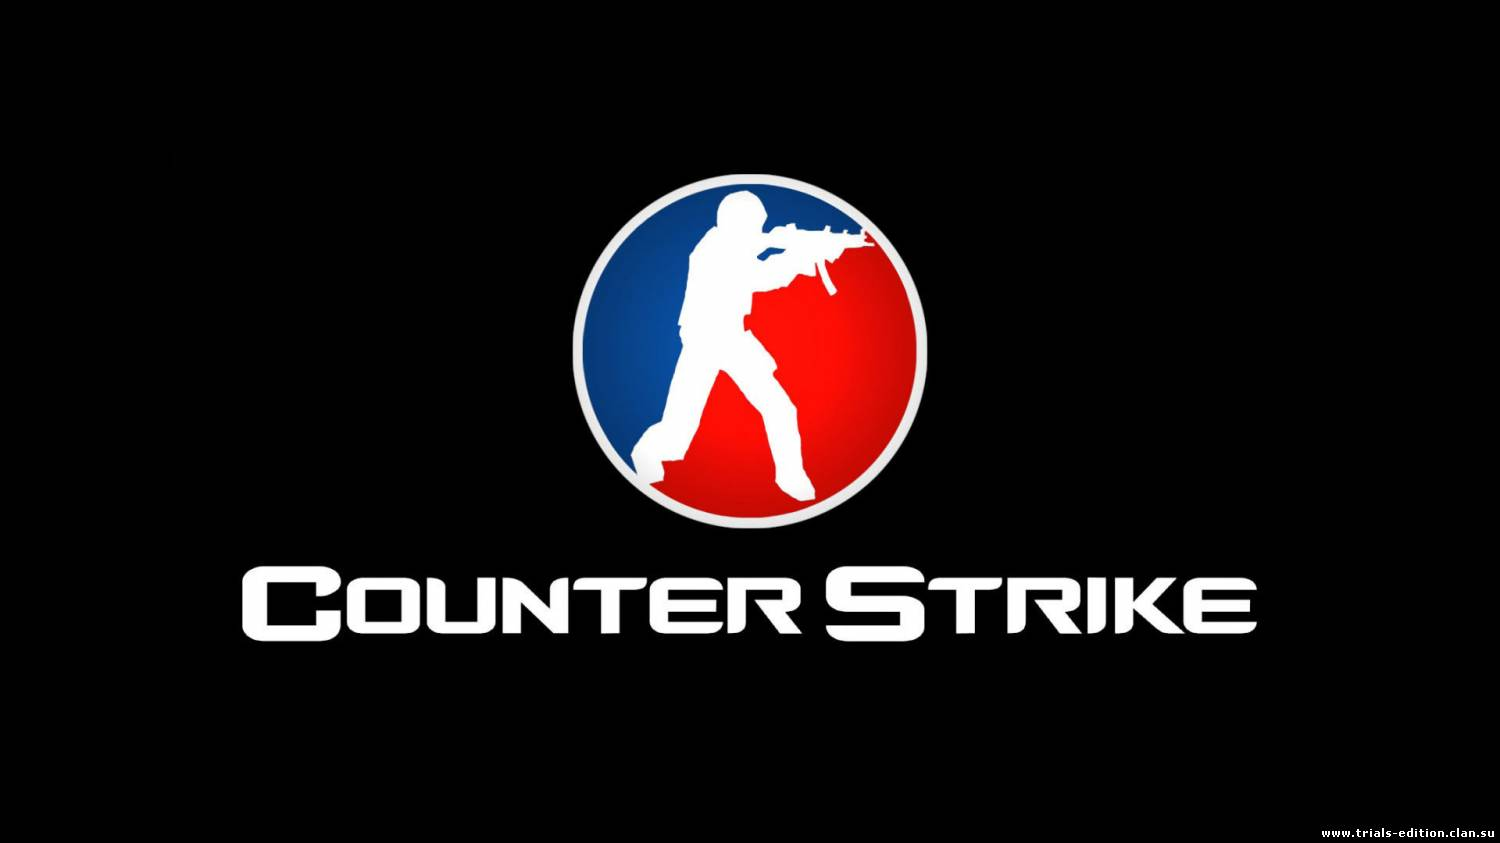 В Казахстане увольняют за Counter-Strike